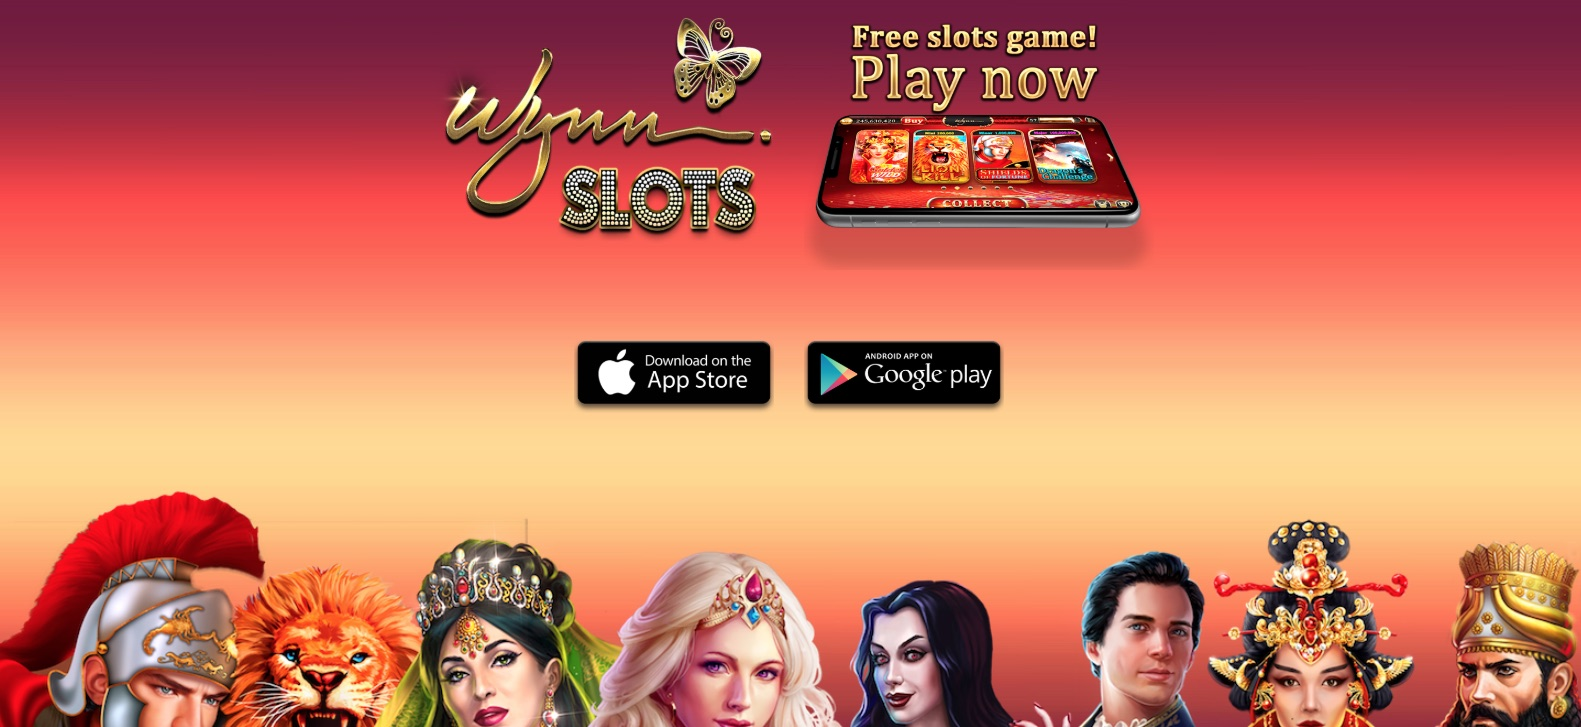 Free Casino Slots Apps Your Meal Ticket For Real Money Vegas Rewards